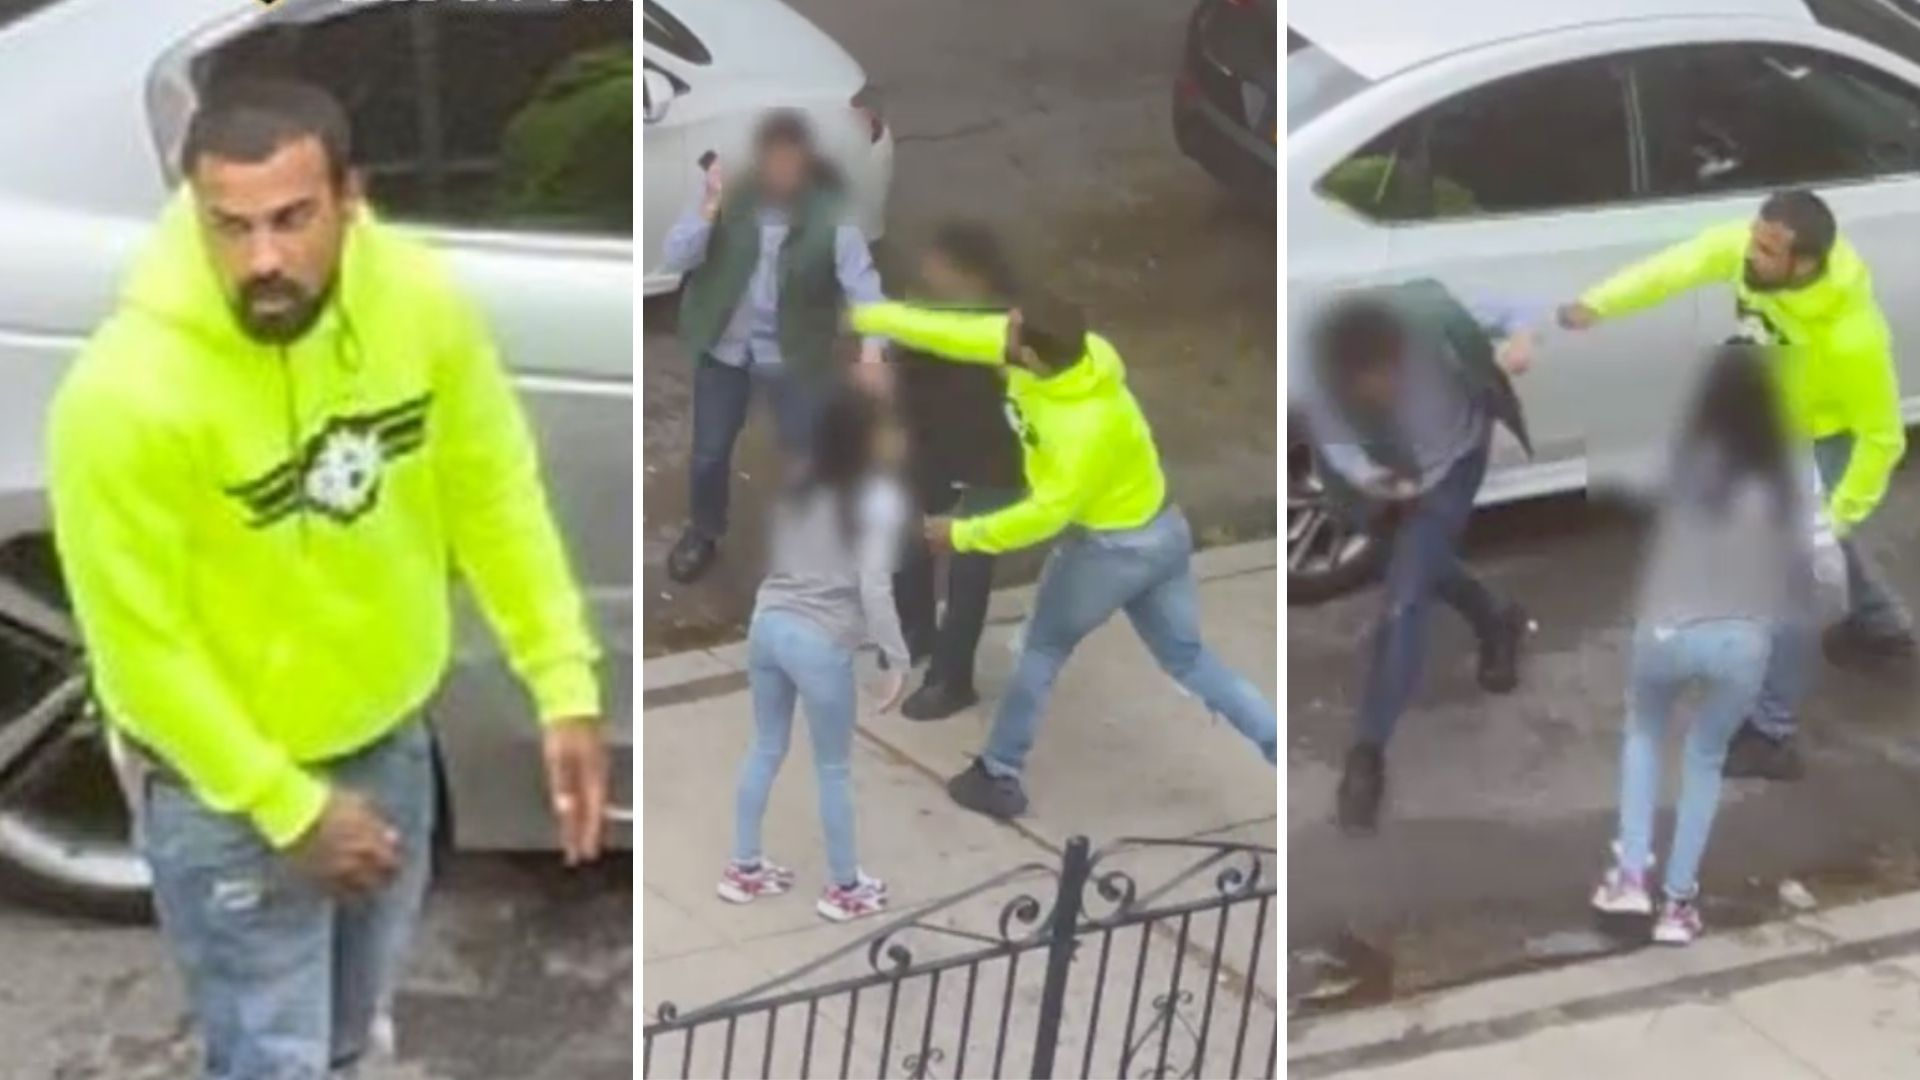 Man attacks, robs 2 after collision in Jackson Heights, Queens